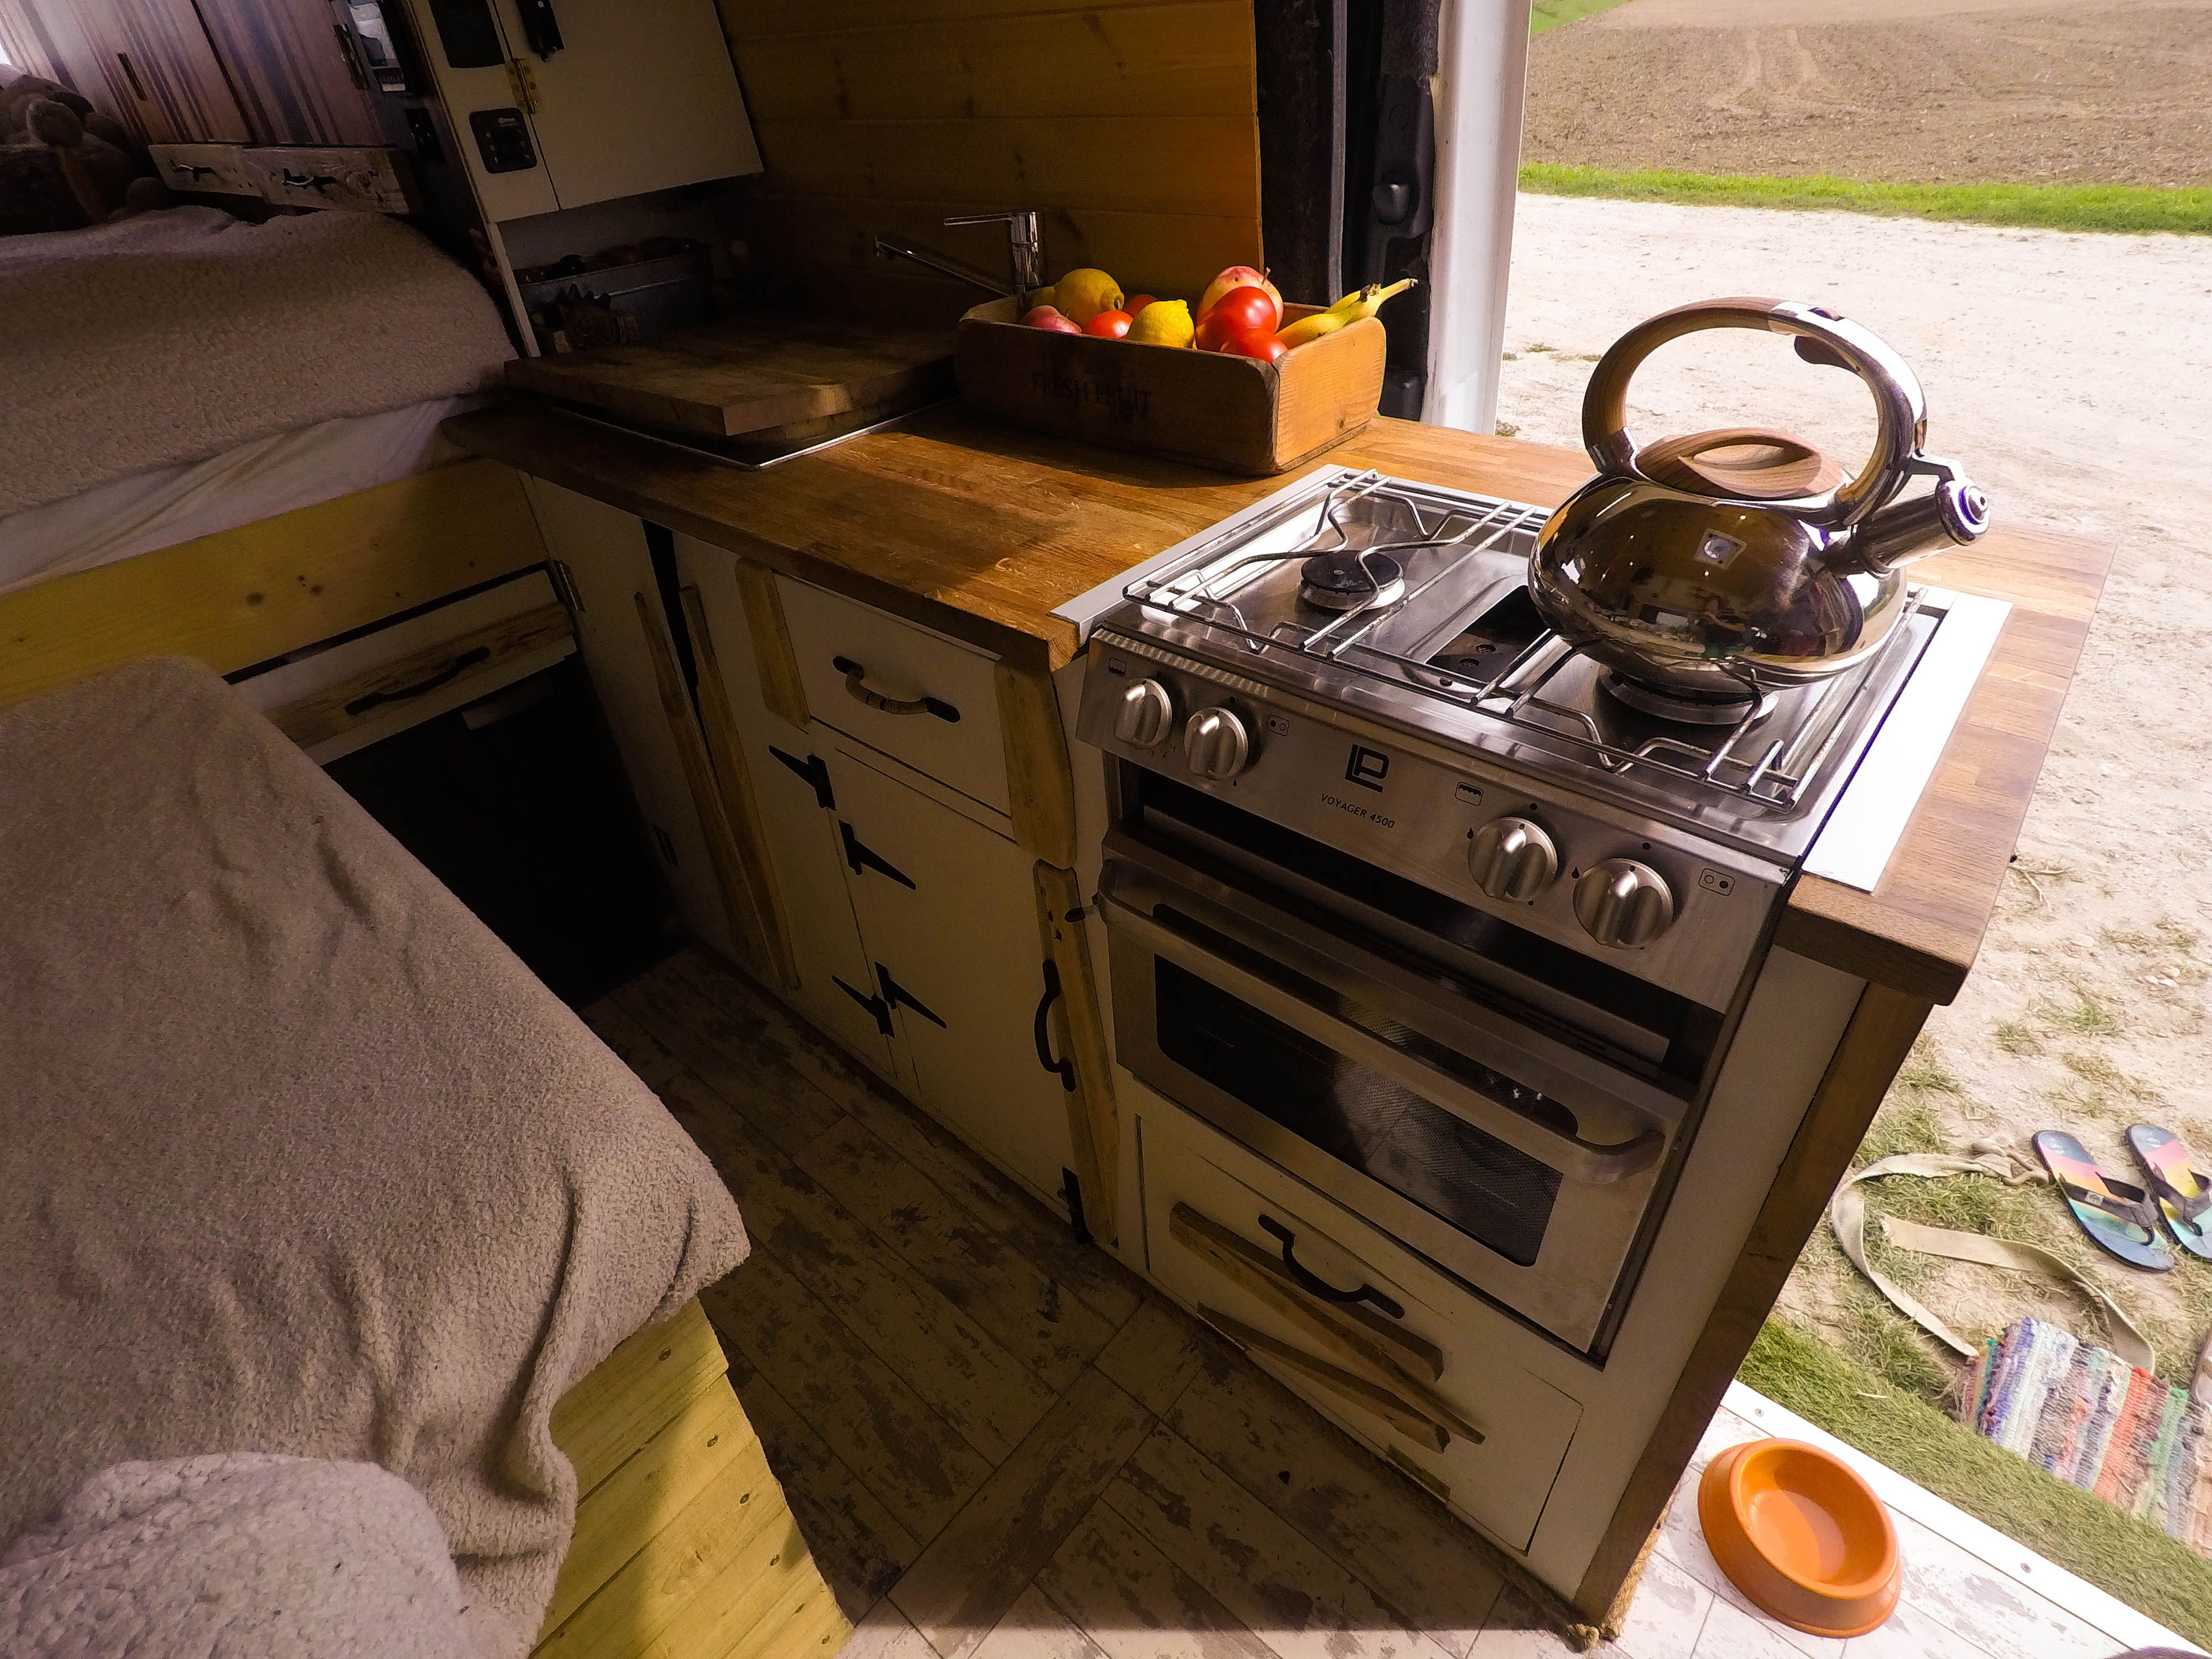 Sprinter van conversion kitchen with oven, hob and grill